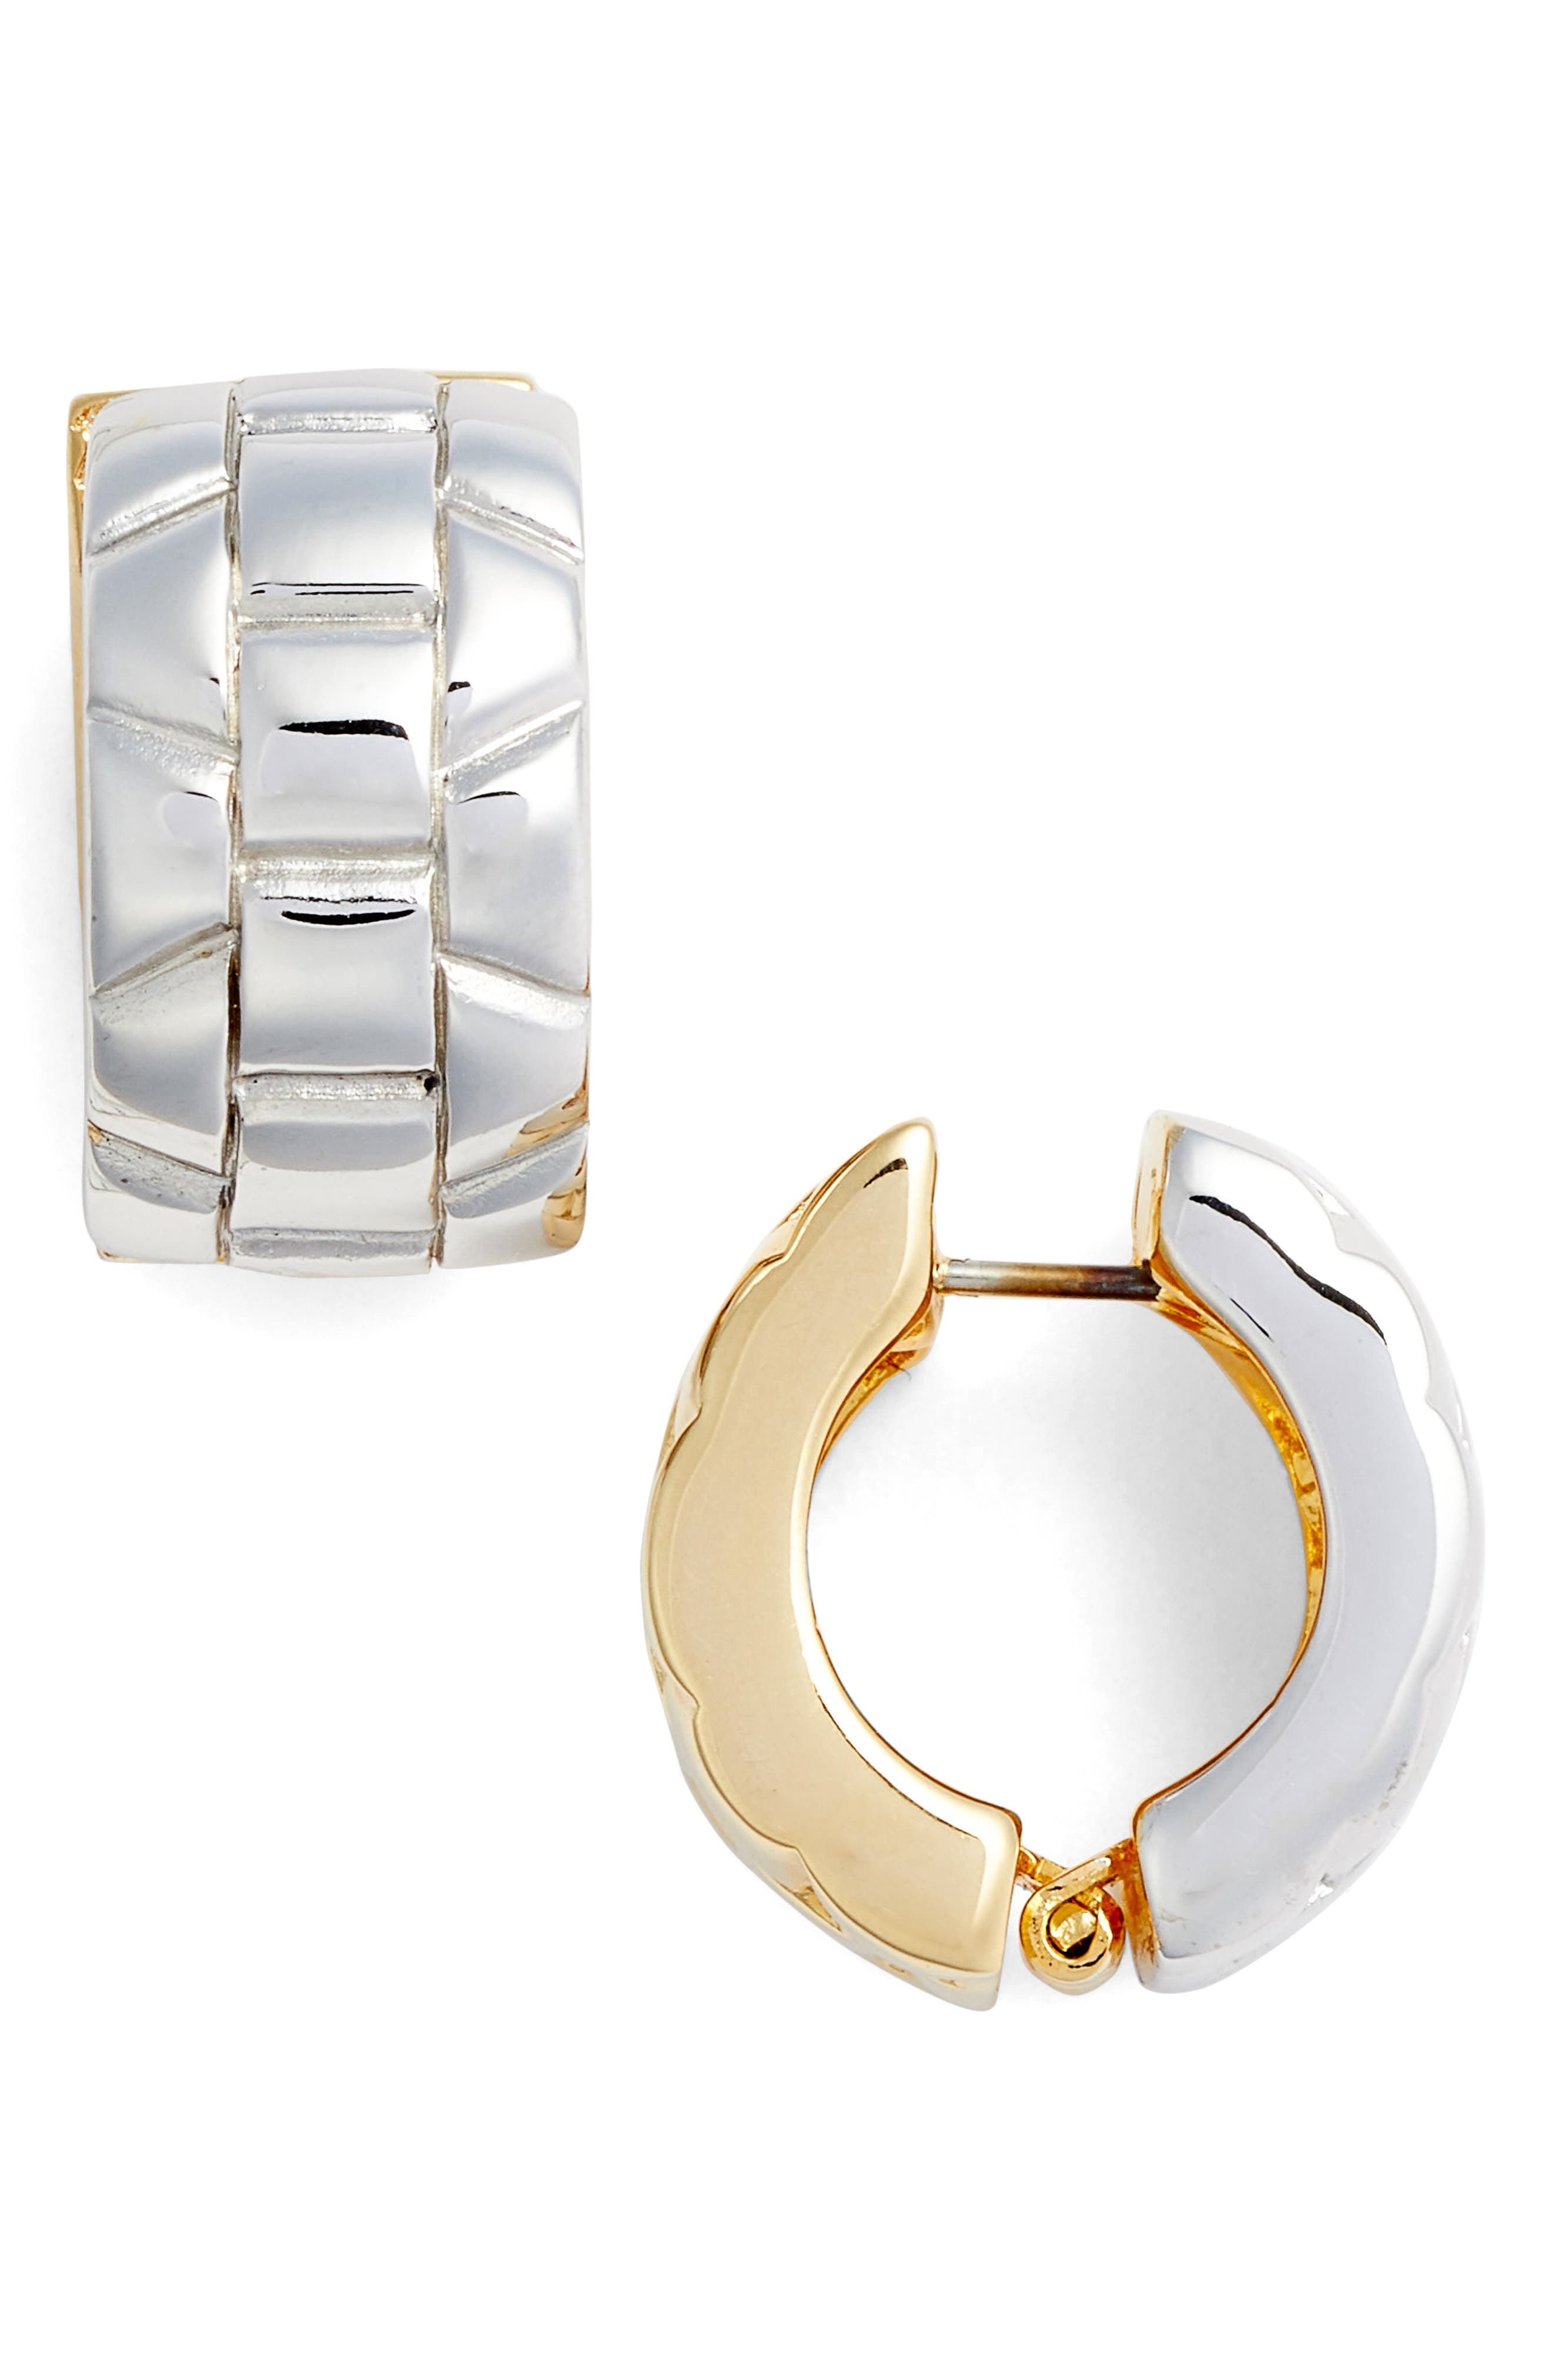 Two Tone Cable Earrings,                             Main thumbnail 1, color,                             Silver/ Gold